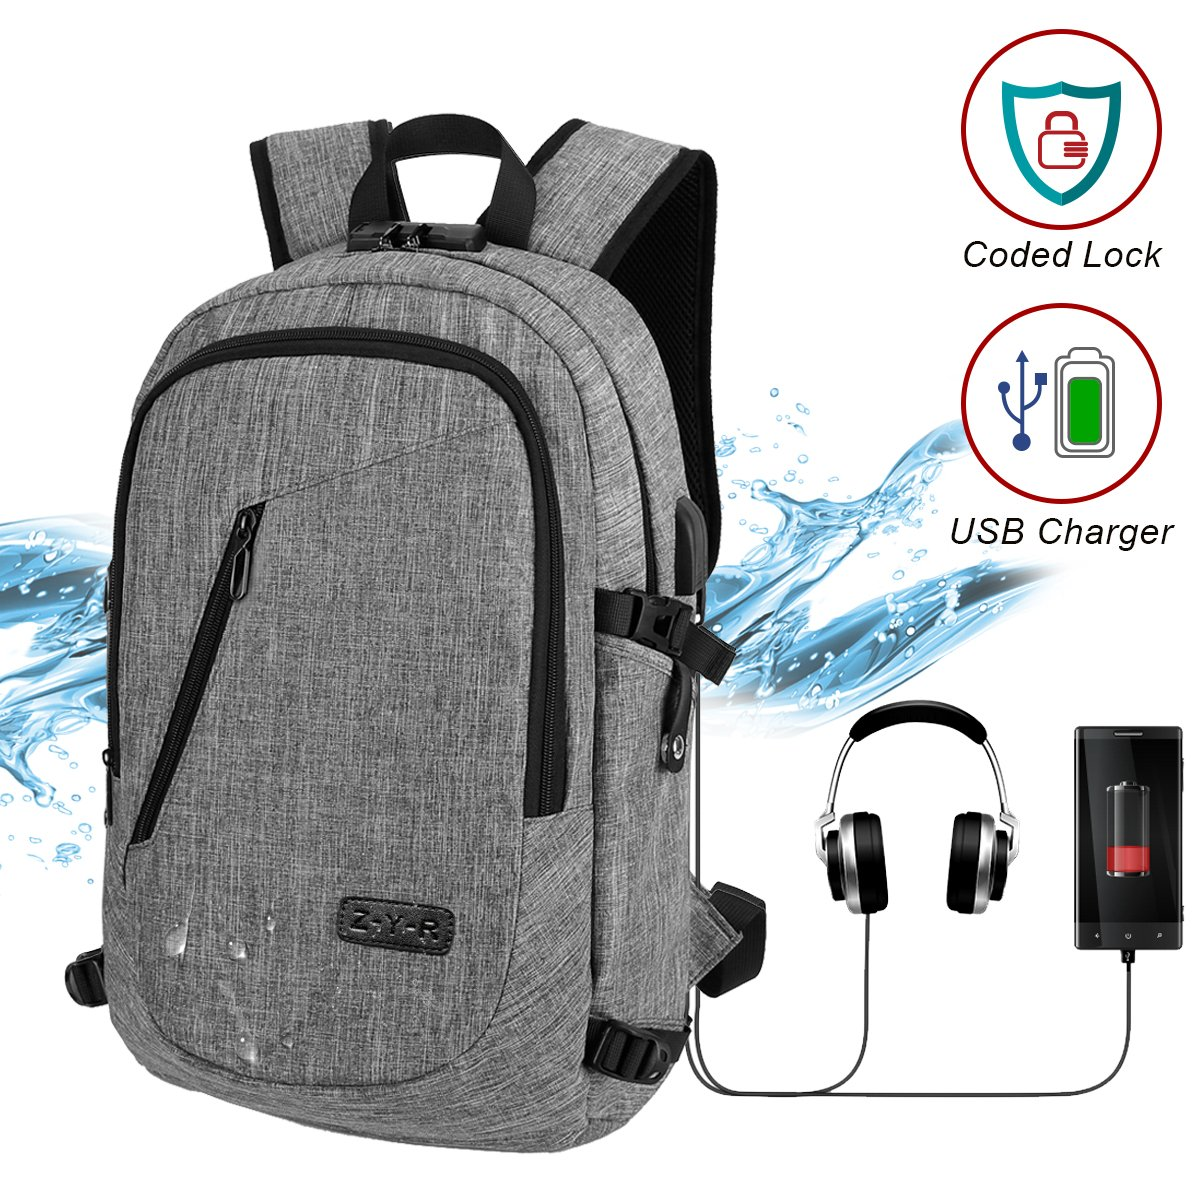 Travel Laptop Backpack Business Laptop Back pack Slim College School Bag with USB Charging Port Headphone interface Water resistant Anti Theft Computer Bag for Women and Men Fits up to 15.6 Inch Laptop DELONIX